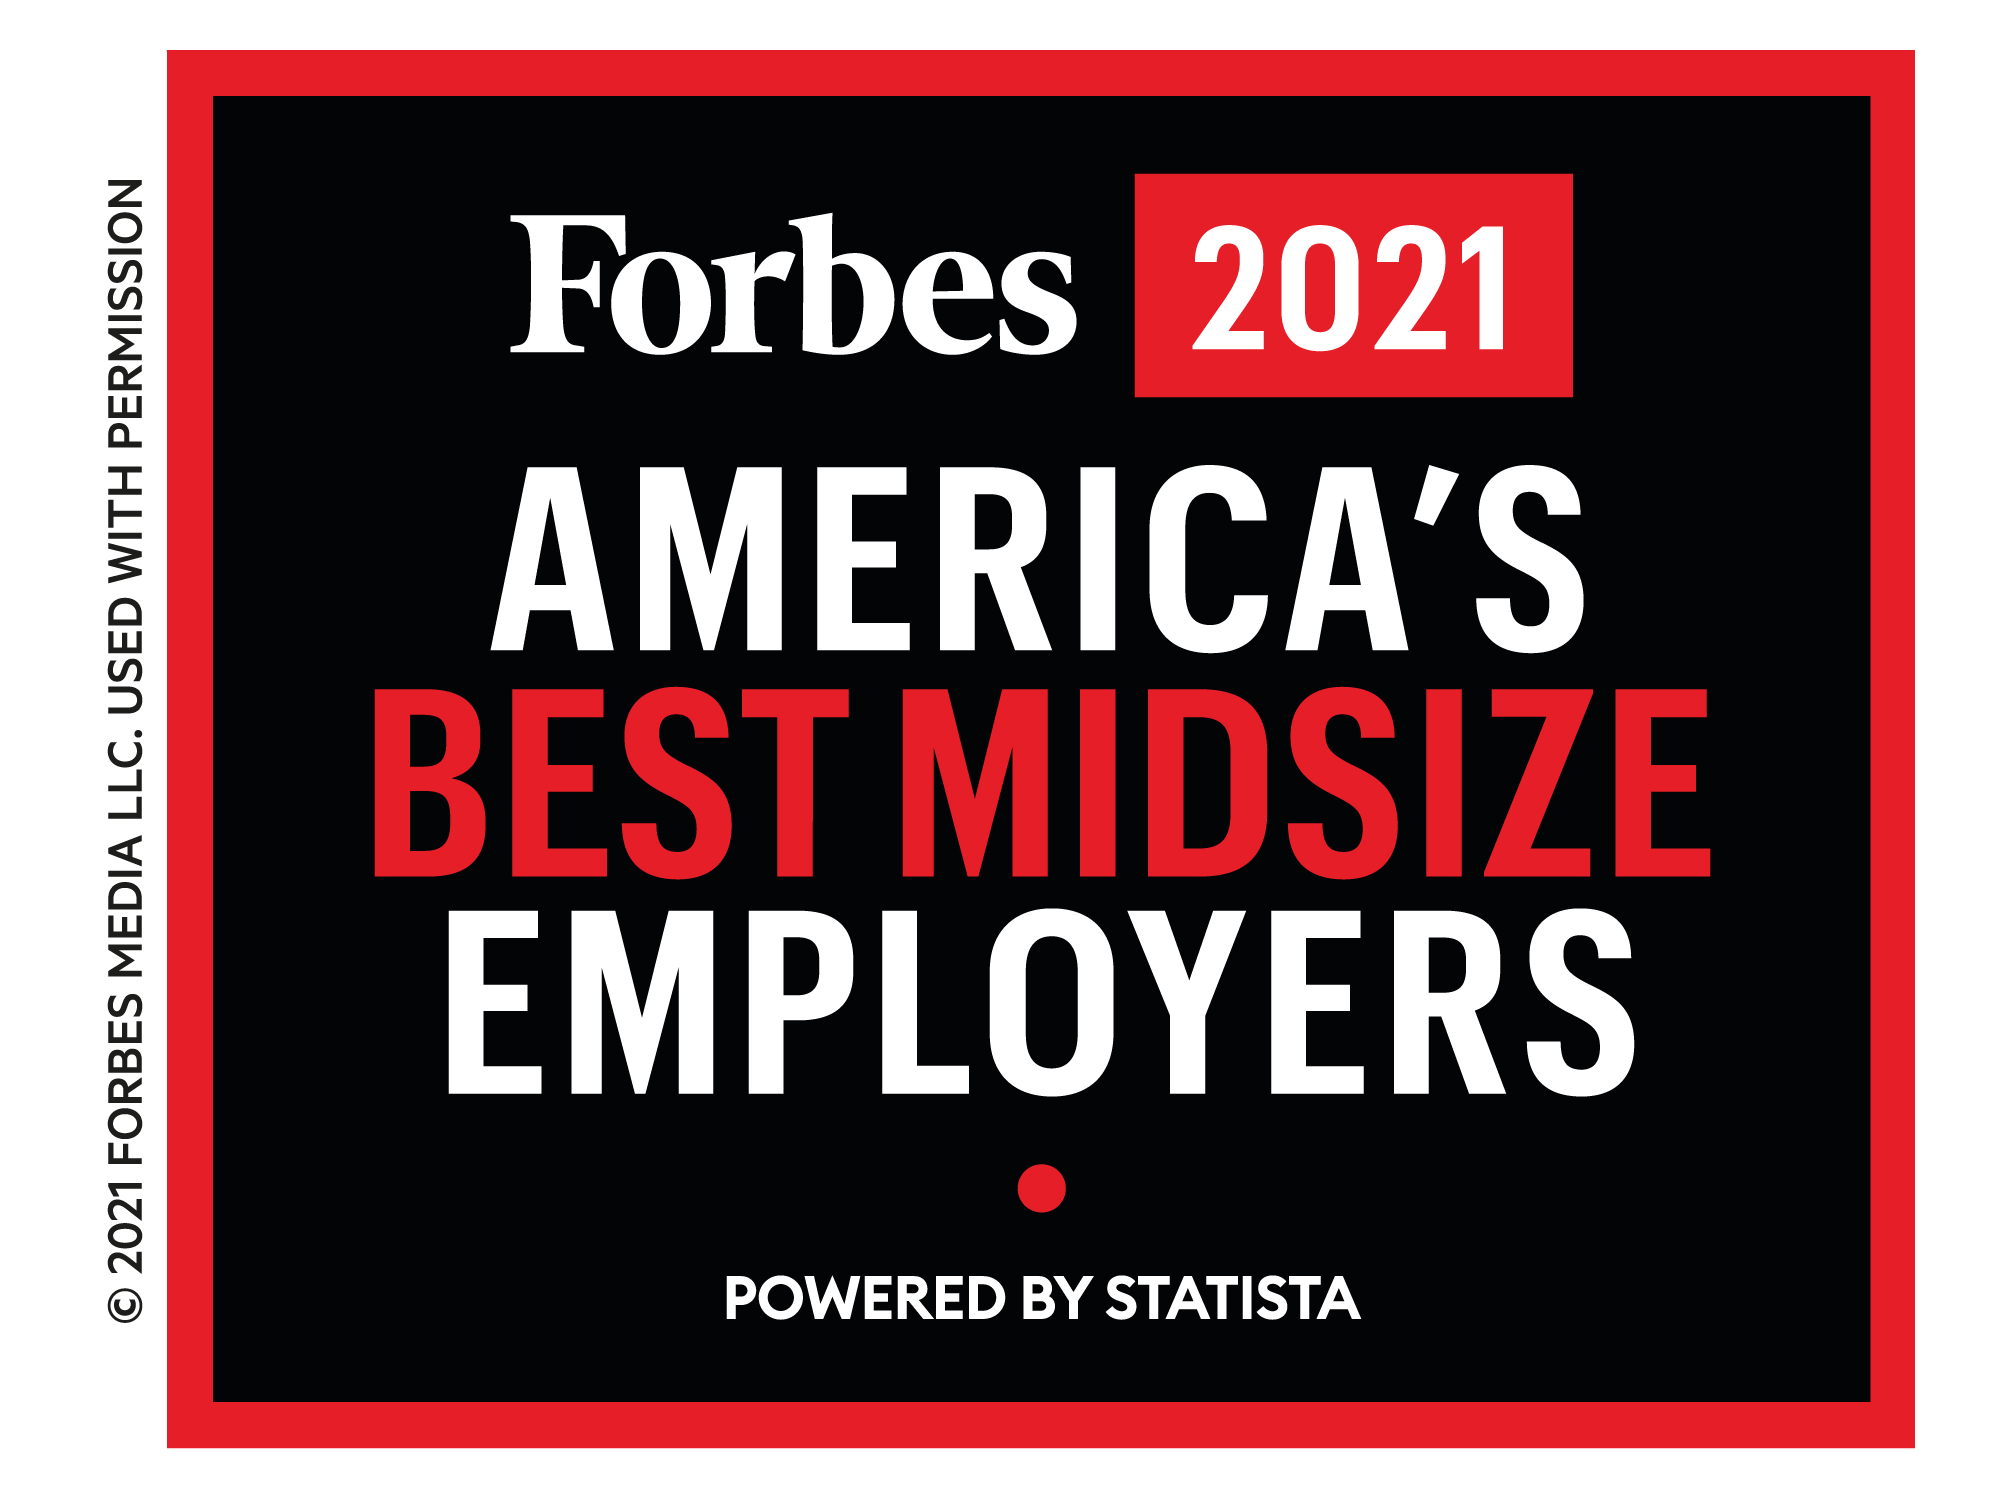 Allied Solutions Ranked Among Americas Best Midsized Employers by Forbes